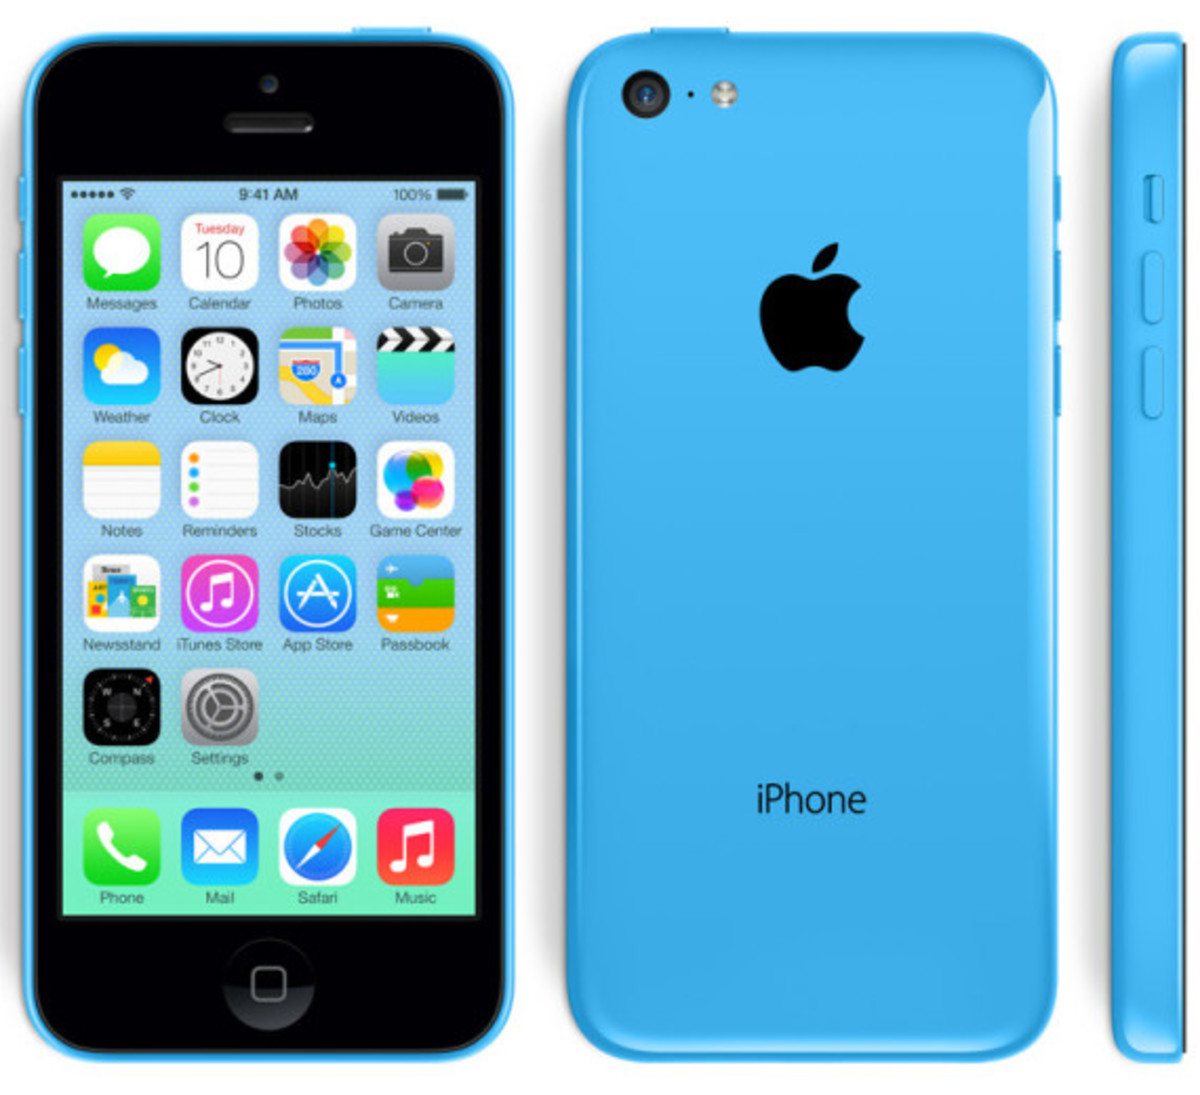 Apple iPhone 5C - Officially Unveiled - 6